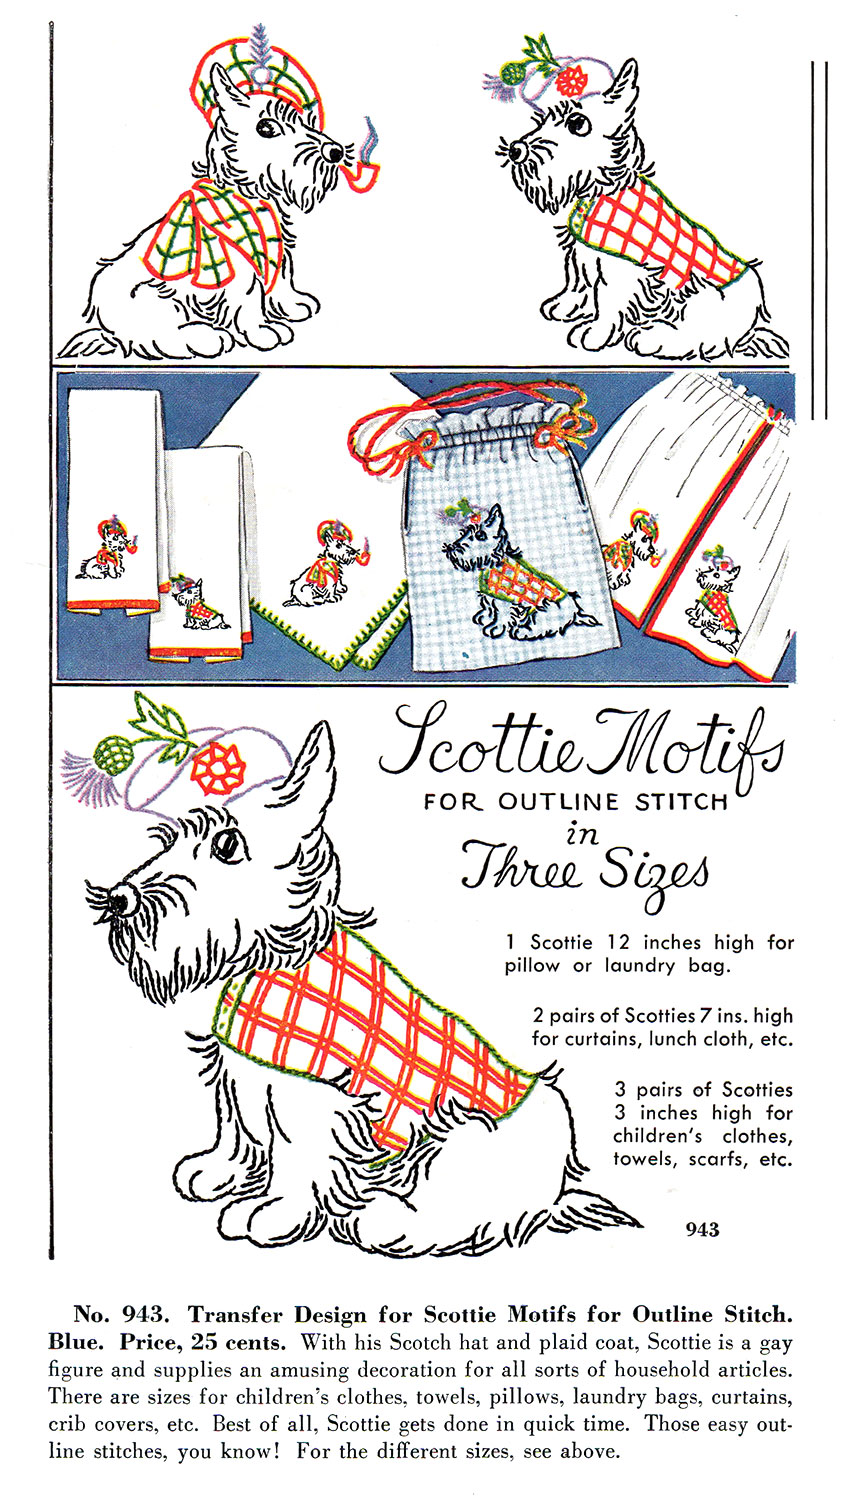 McCalla-943-Scottie-Motifs-3